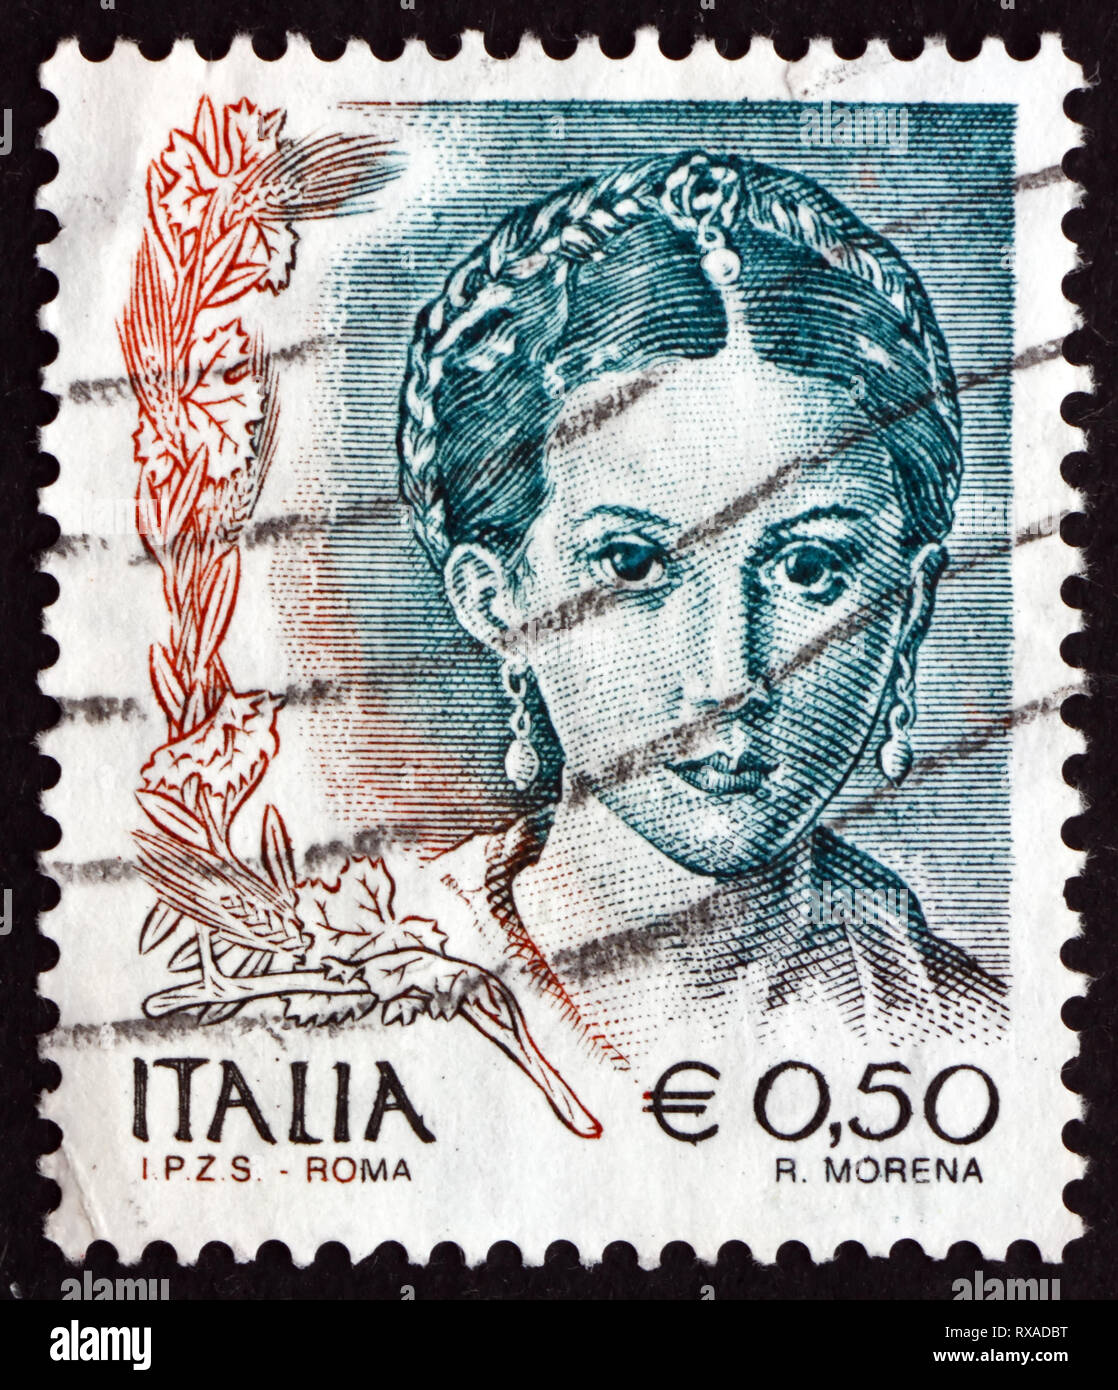 ITALY - CIRCA 2002: a stamp printed in the Italy shows Antea, Detail of Painting by Parmigianino, Painter and Printmaker, circa 2002 - Stock Image